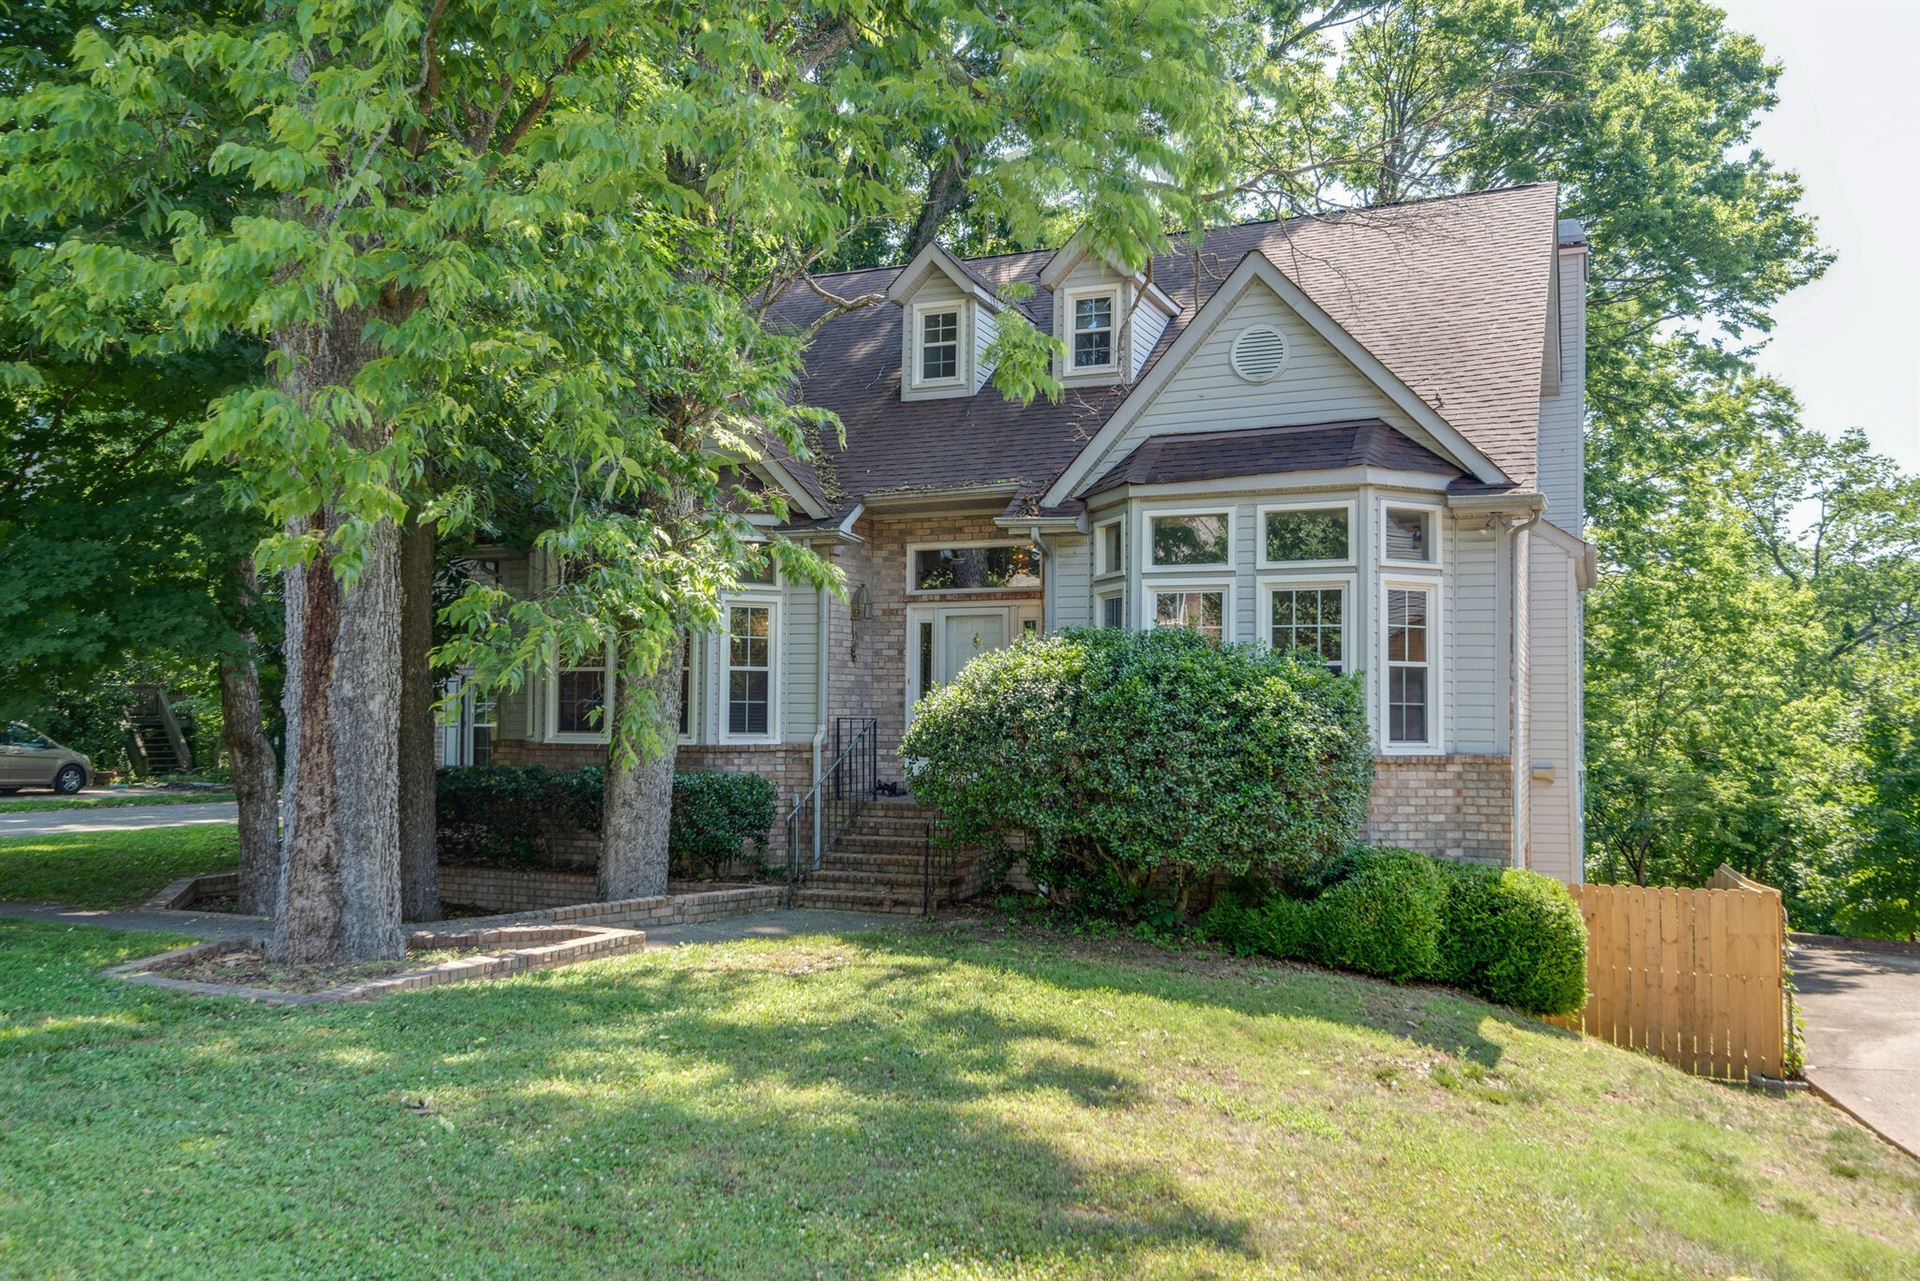 5509 Cottonport Dr, Brentwood, TN 37027 - MLS#: 2257695